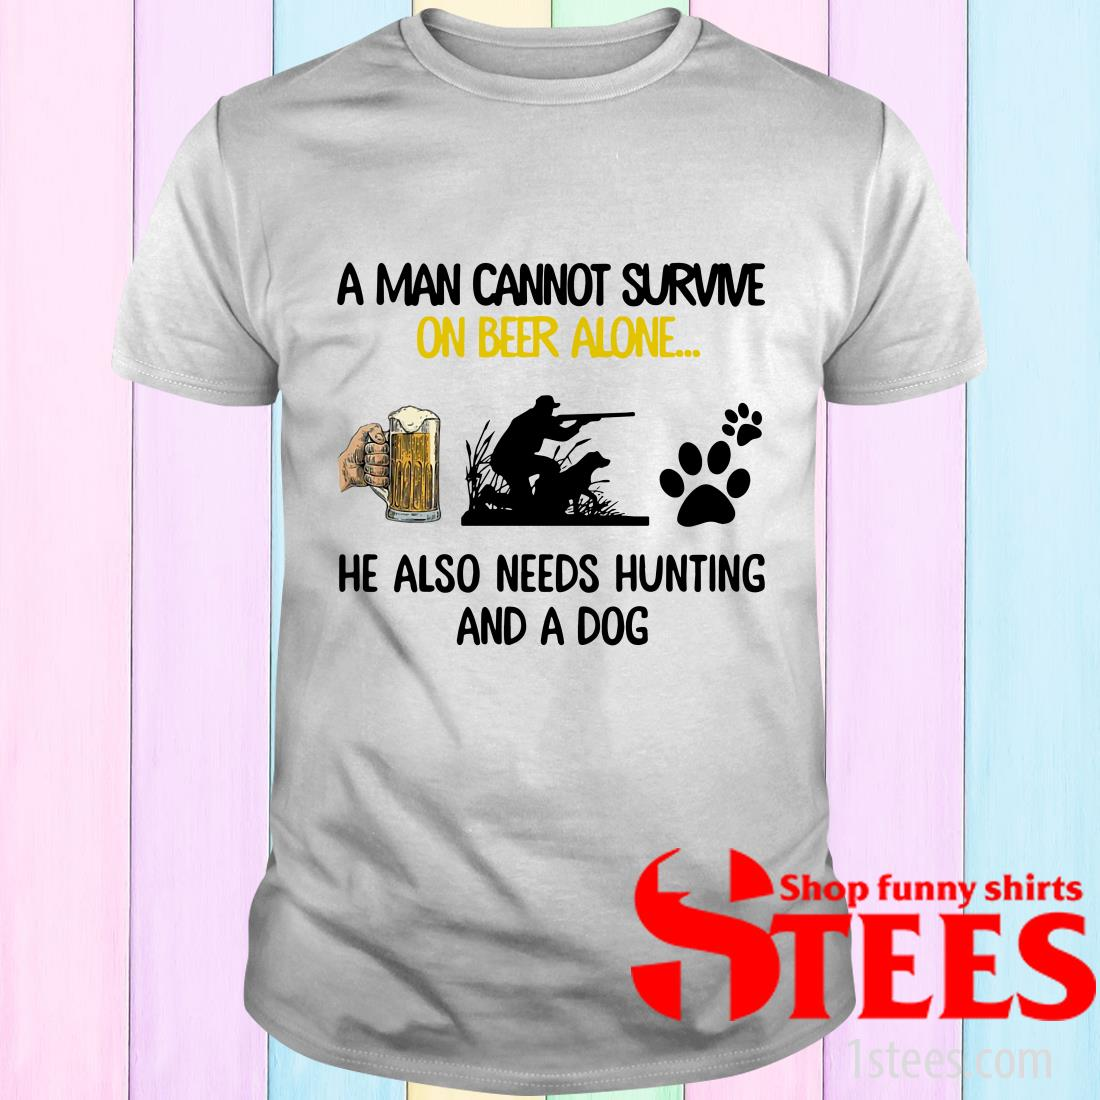 A Man Cannot Survive On Beer Alone He Also Needs Hunting And A Dog T-Shirt